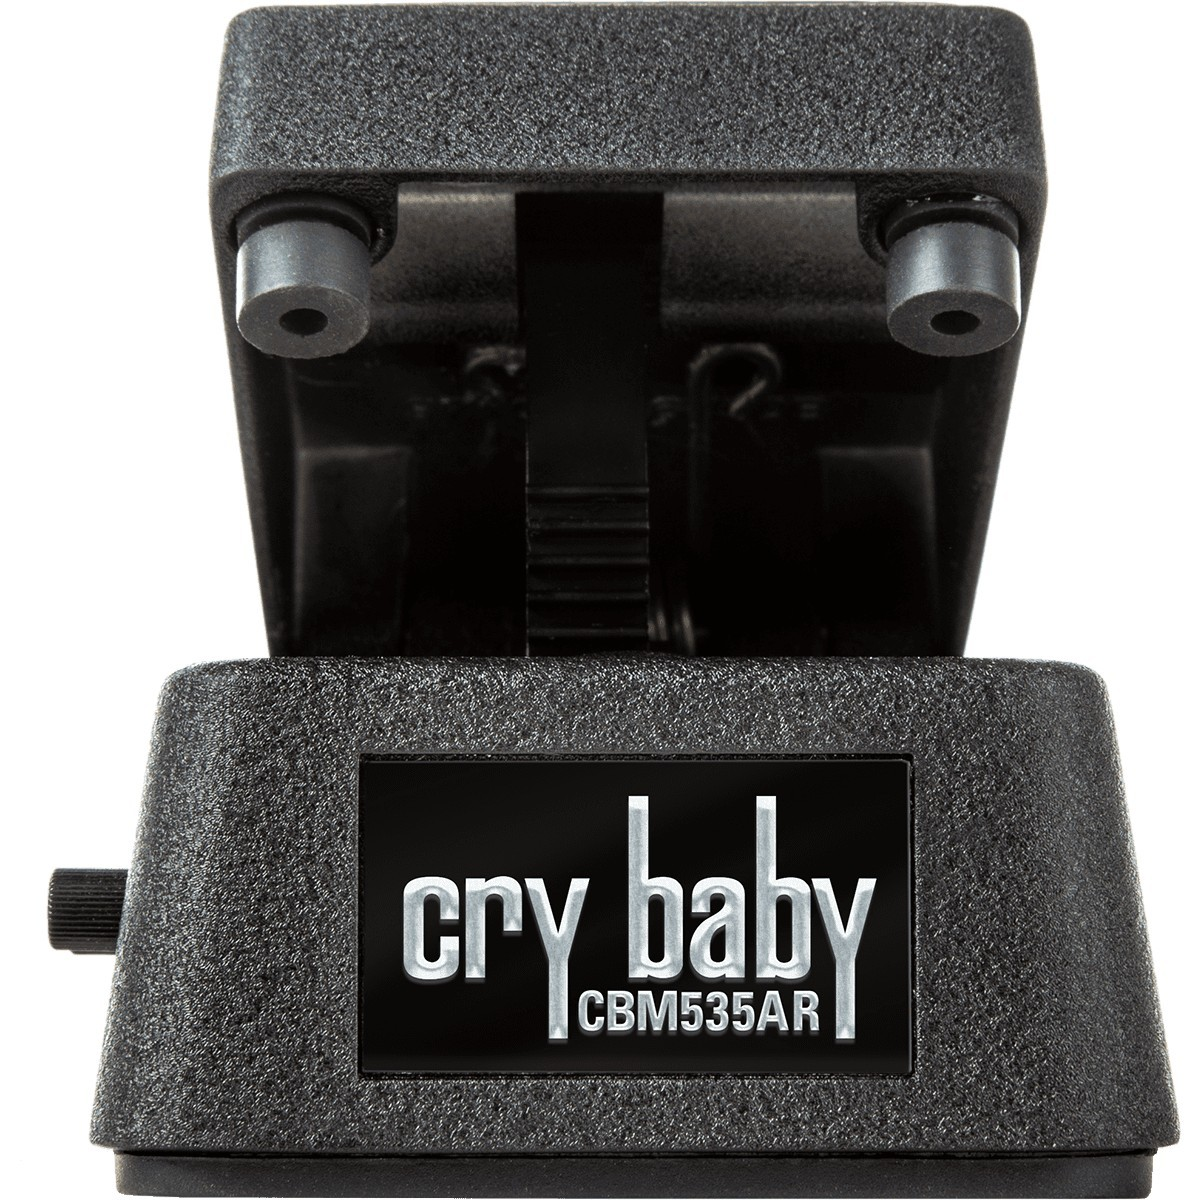 DUNLOP Cry Baby Q Mini 535Q Auto Return Wah